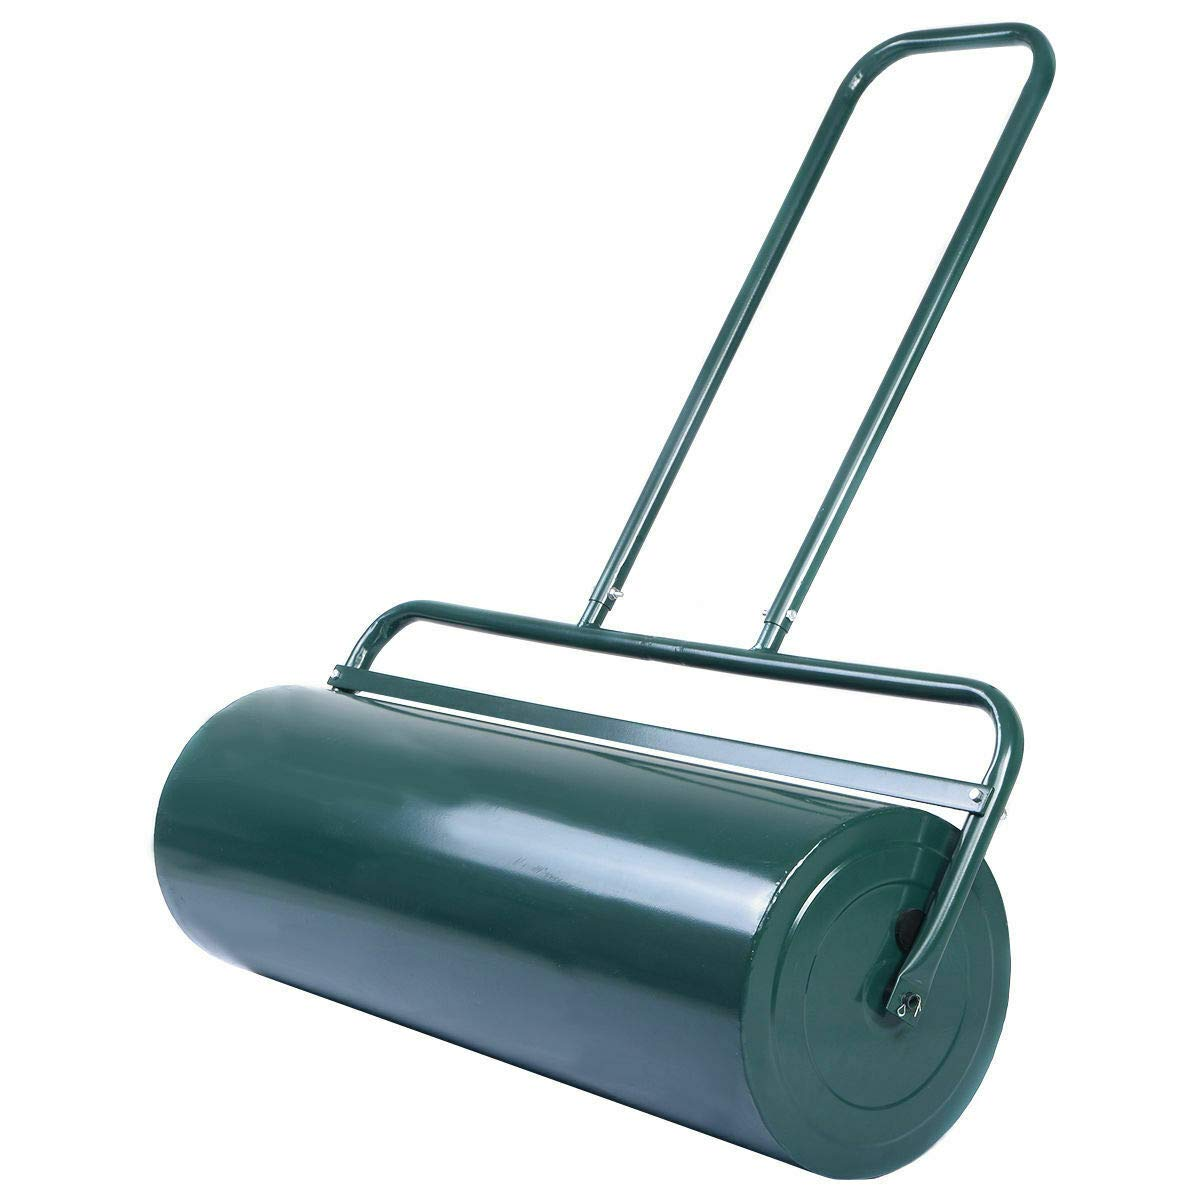 Goplus Lawn Roller Tow Behind Water Filled Poly Push for Garden, Green (12 by 36-Inch)